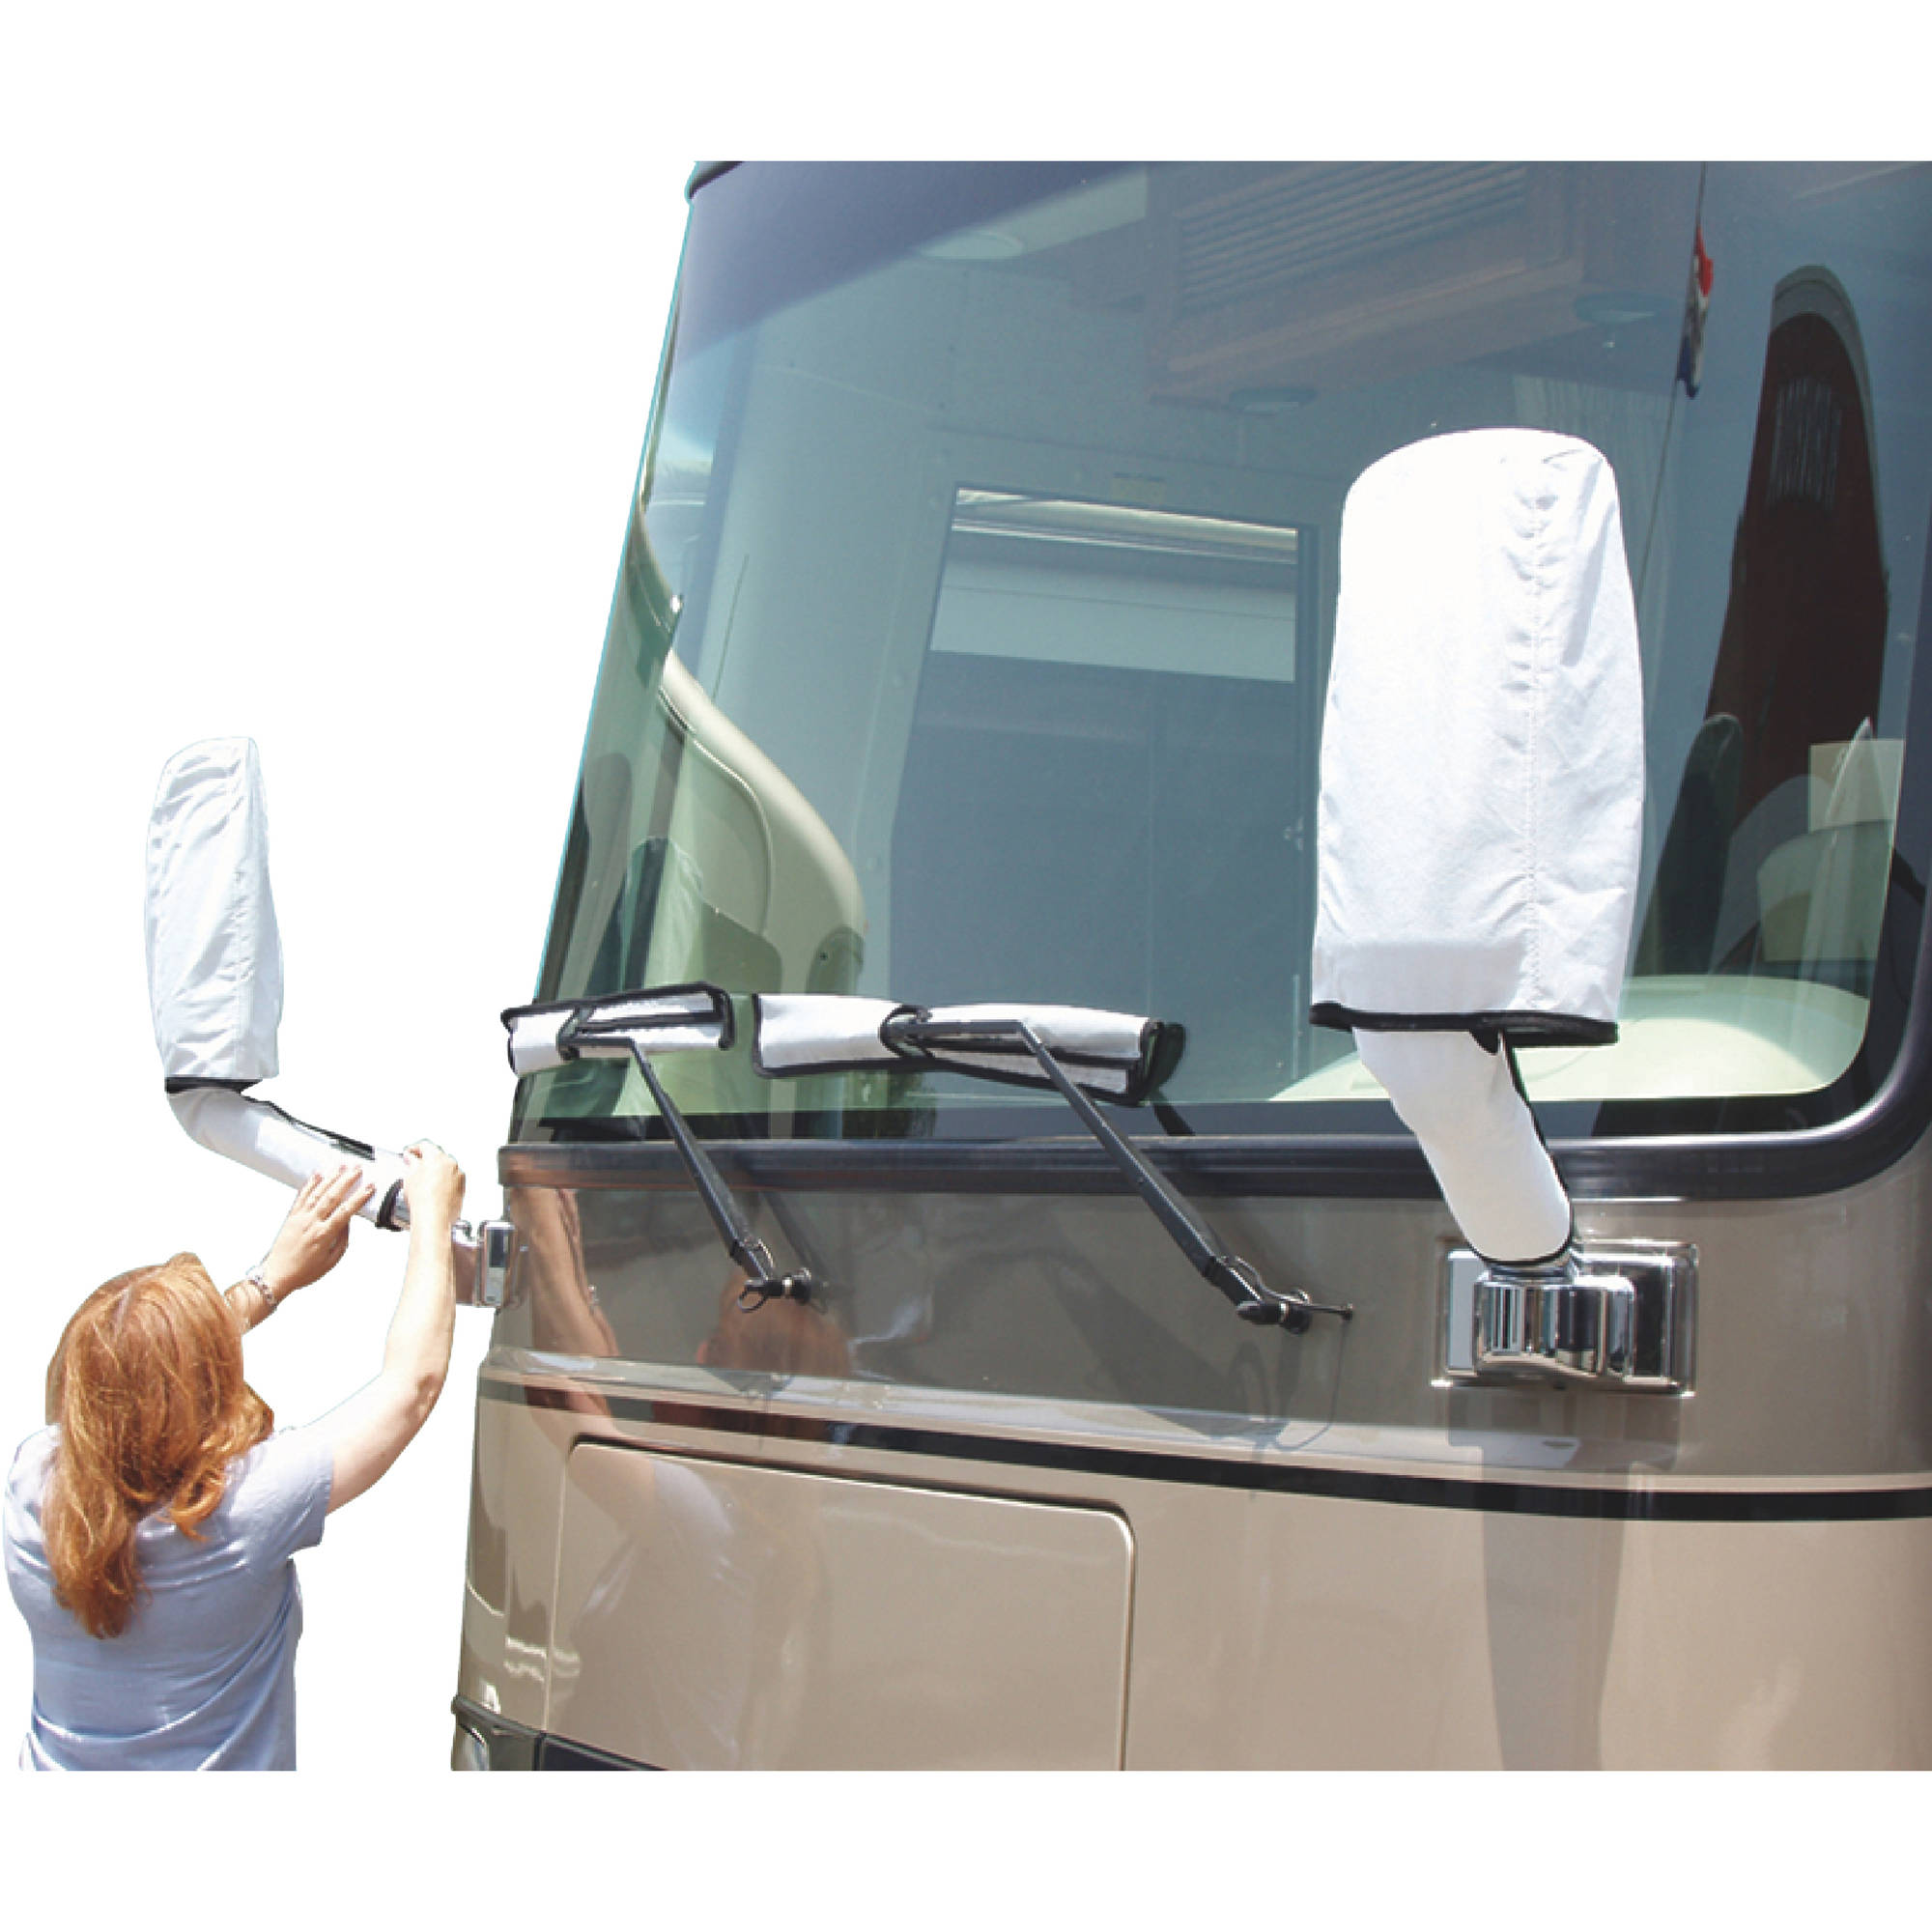 ADCO Dupont Tyvek RV Side Mirror and Windshield Wiper Covers With Storage Cover, White With Black Border